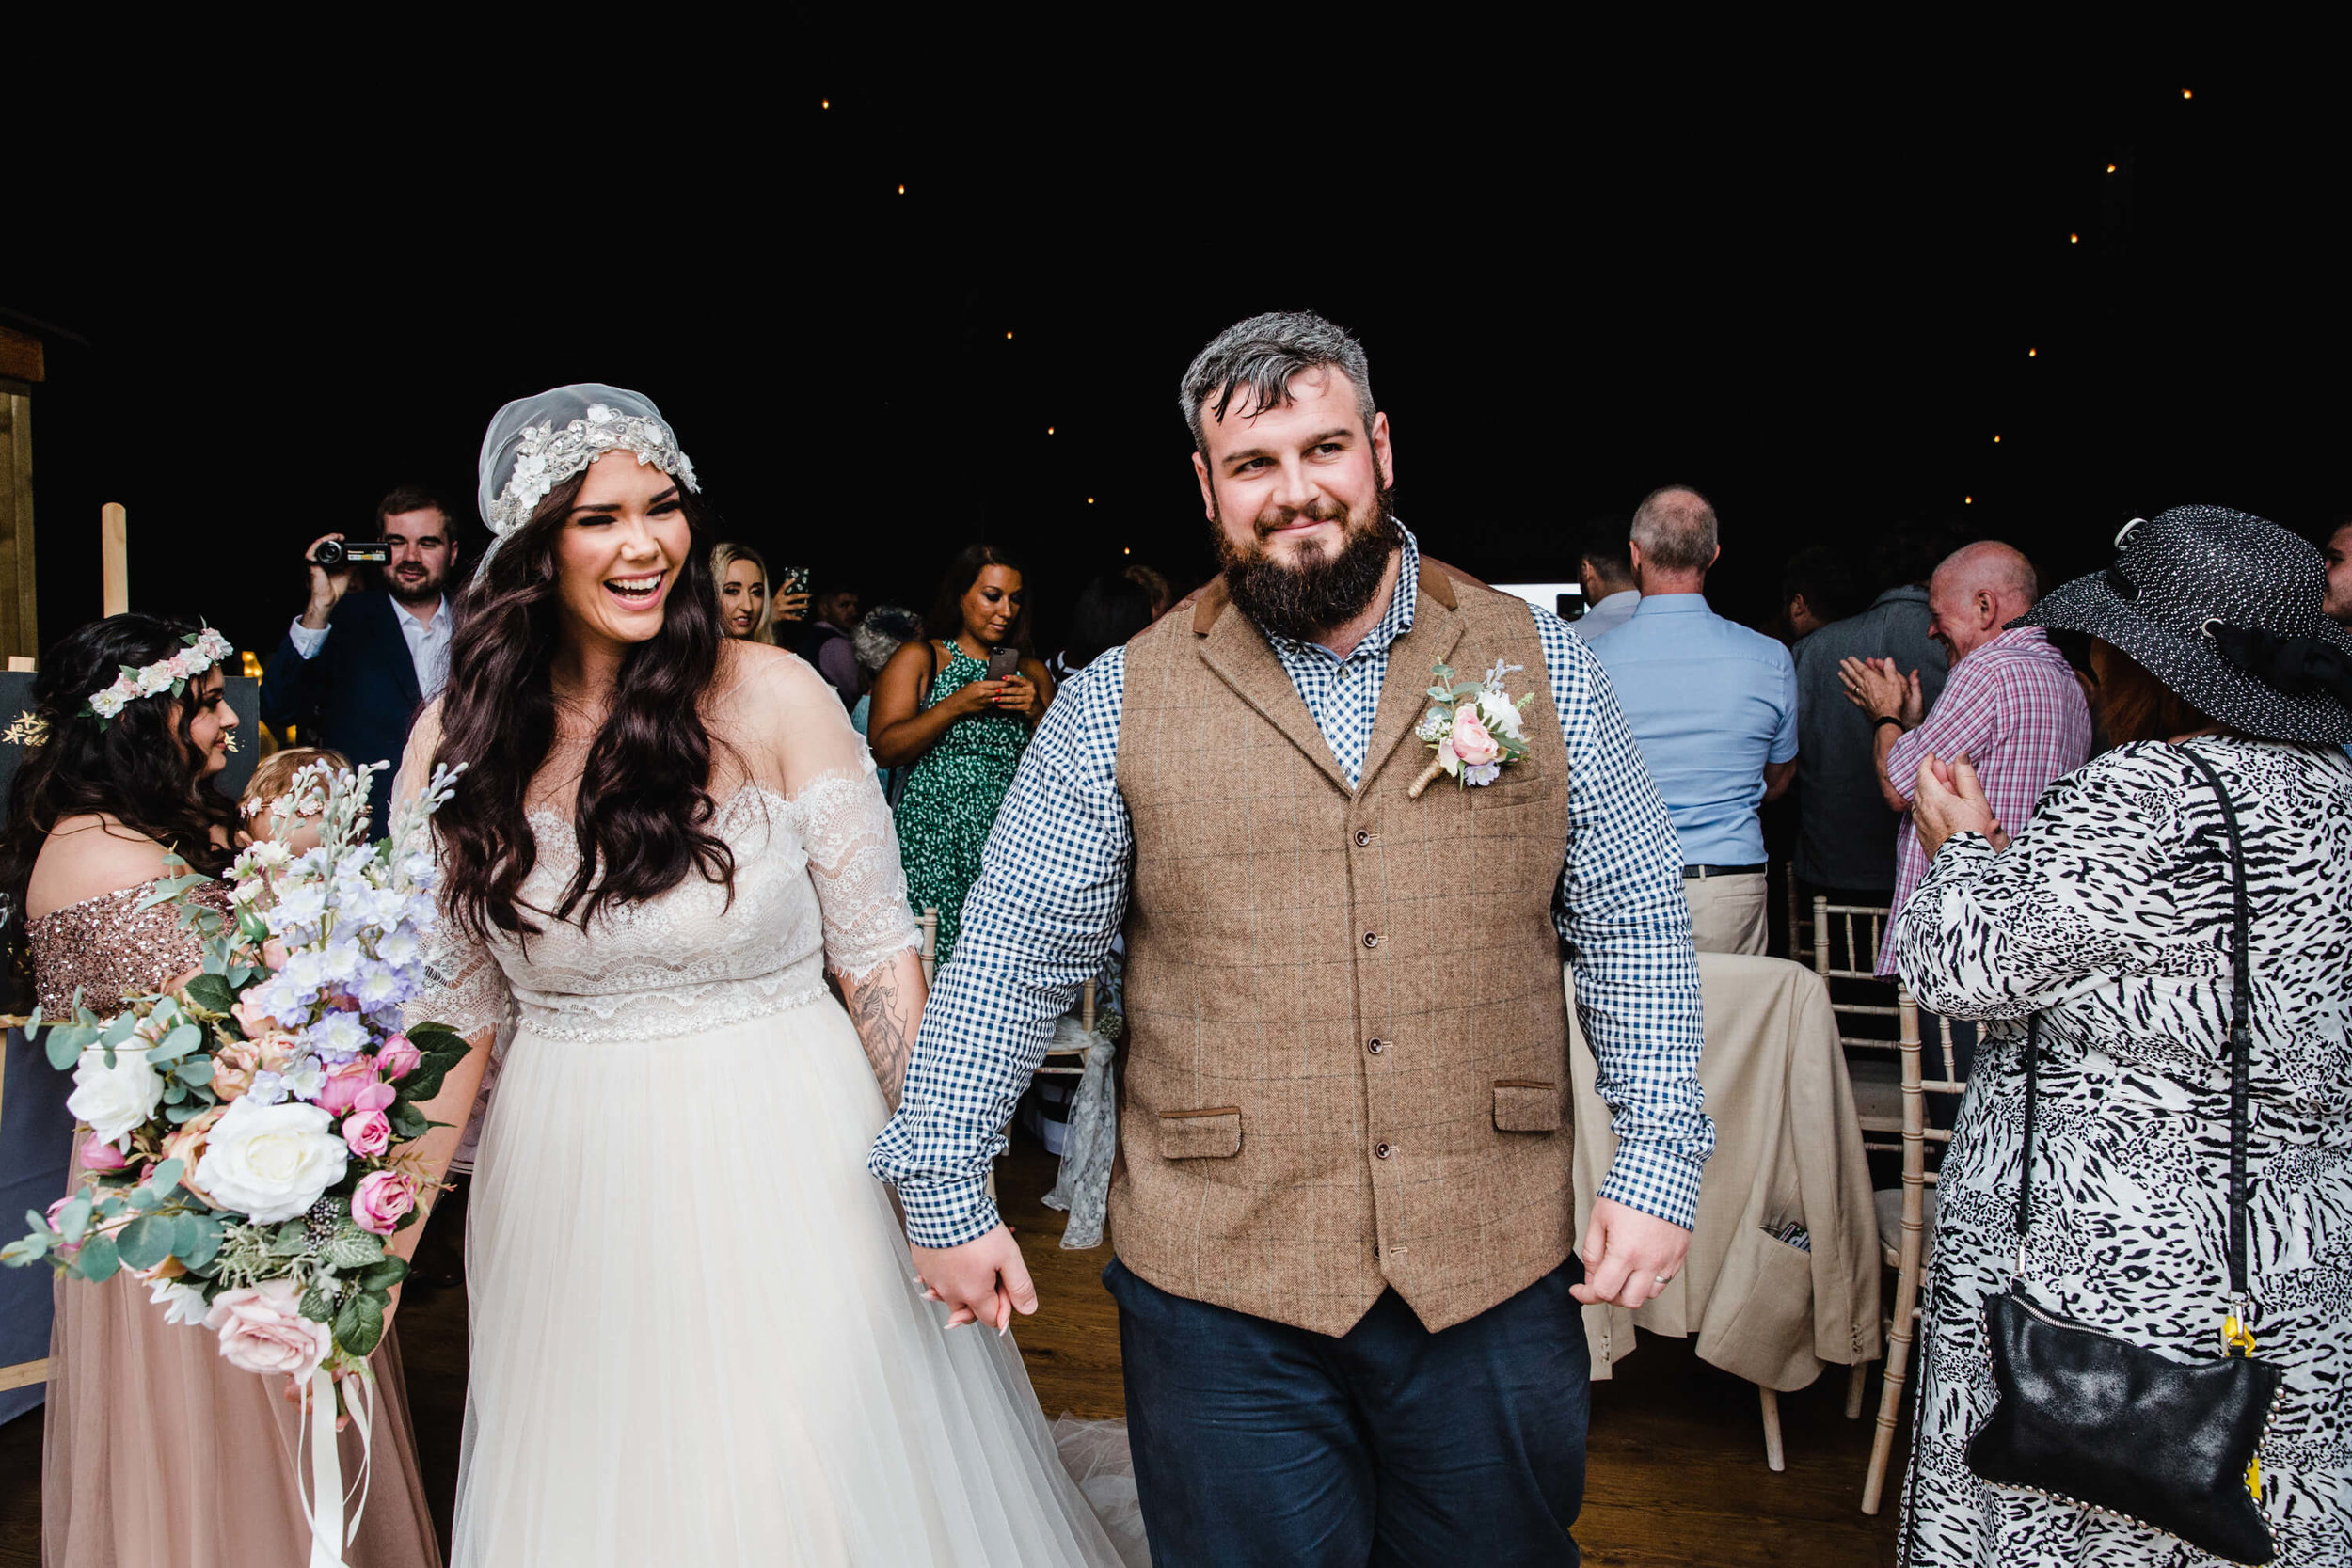 bride and groom hold hands after formal nuptial ceremony ends